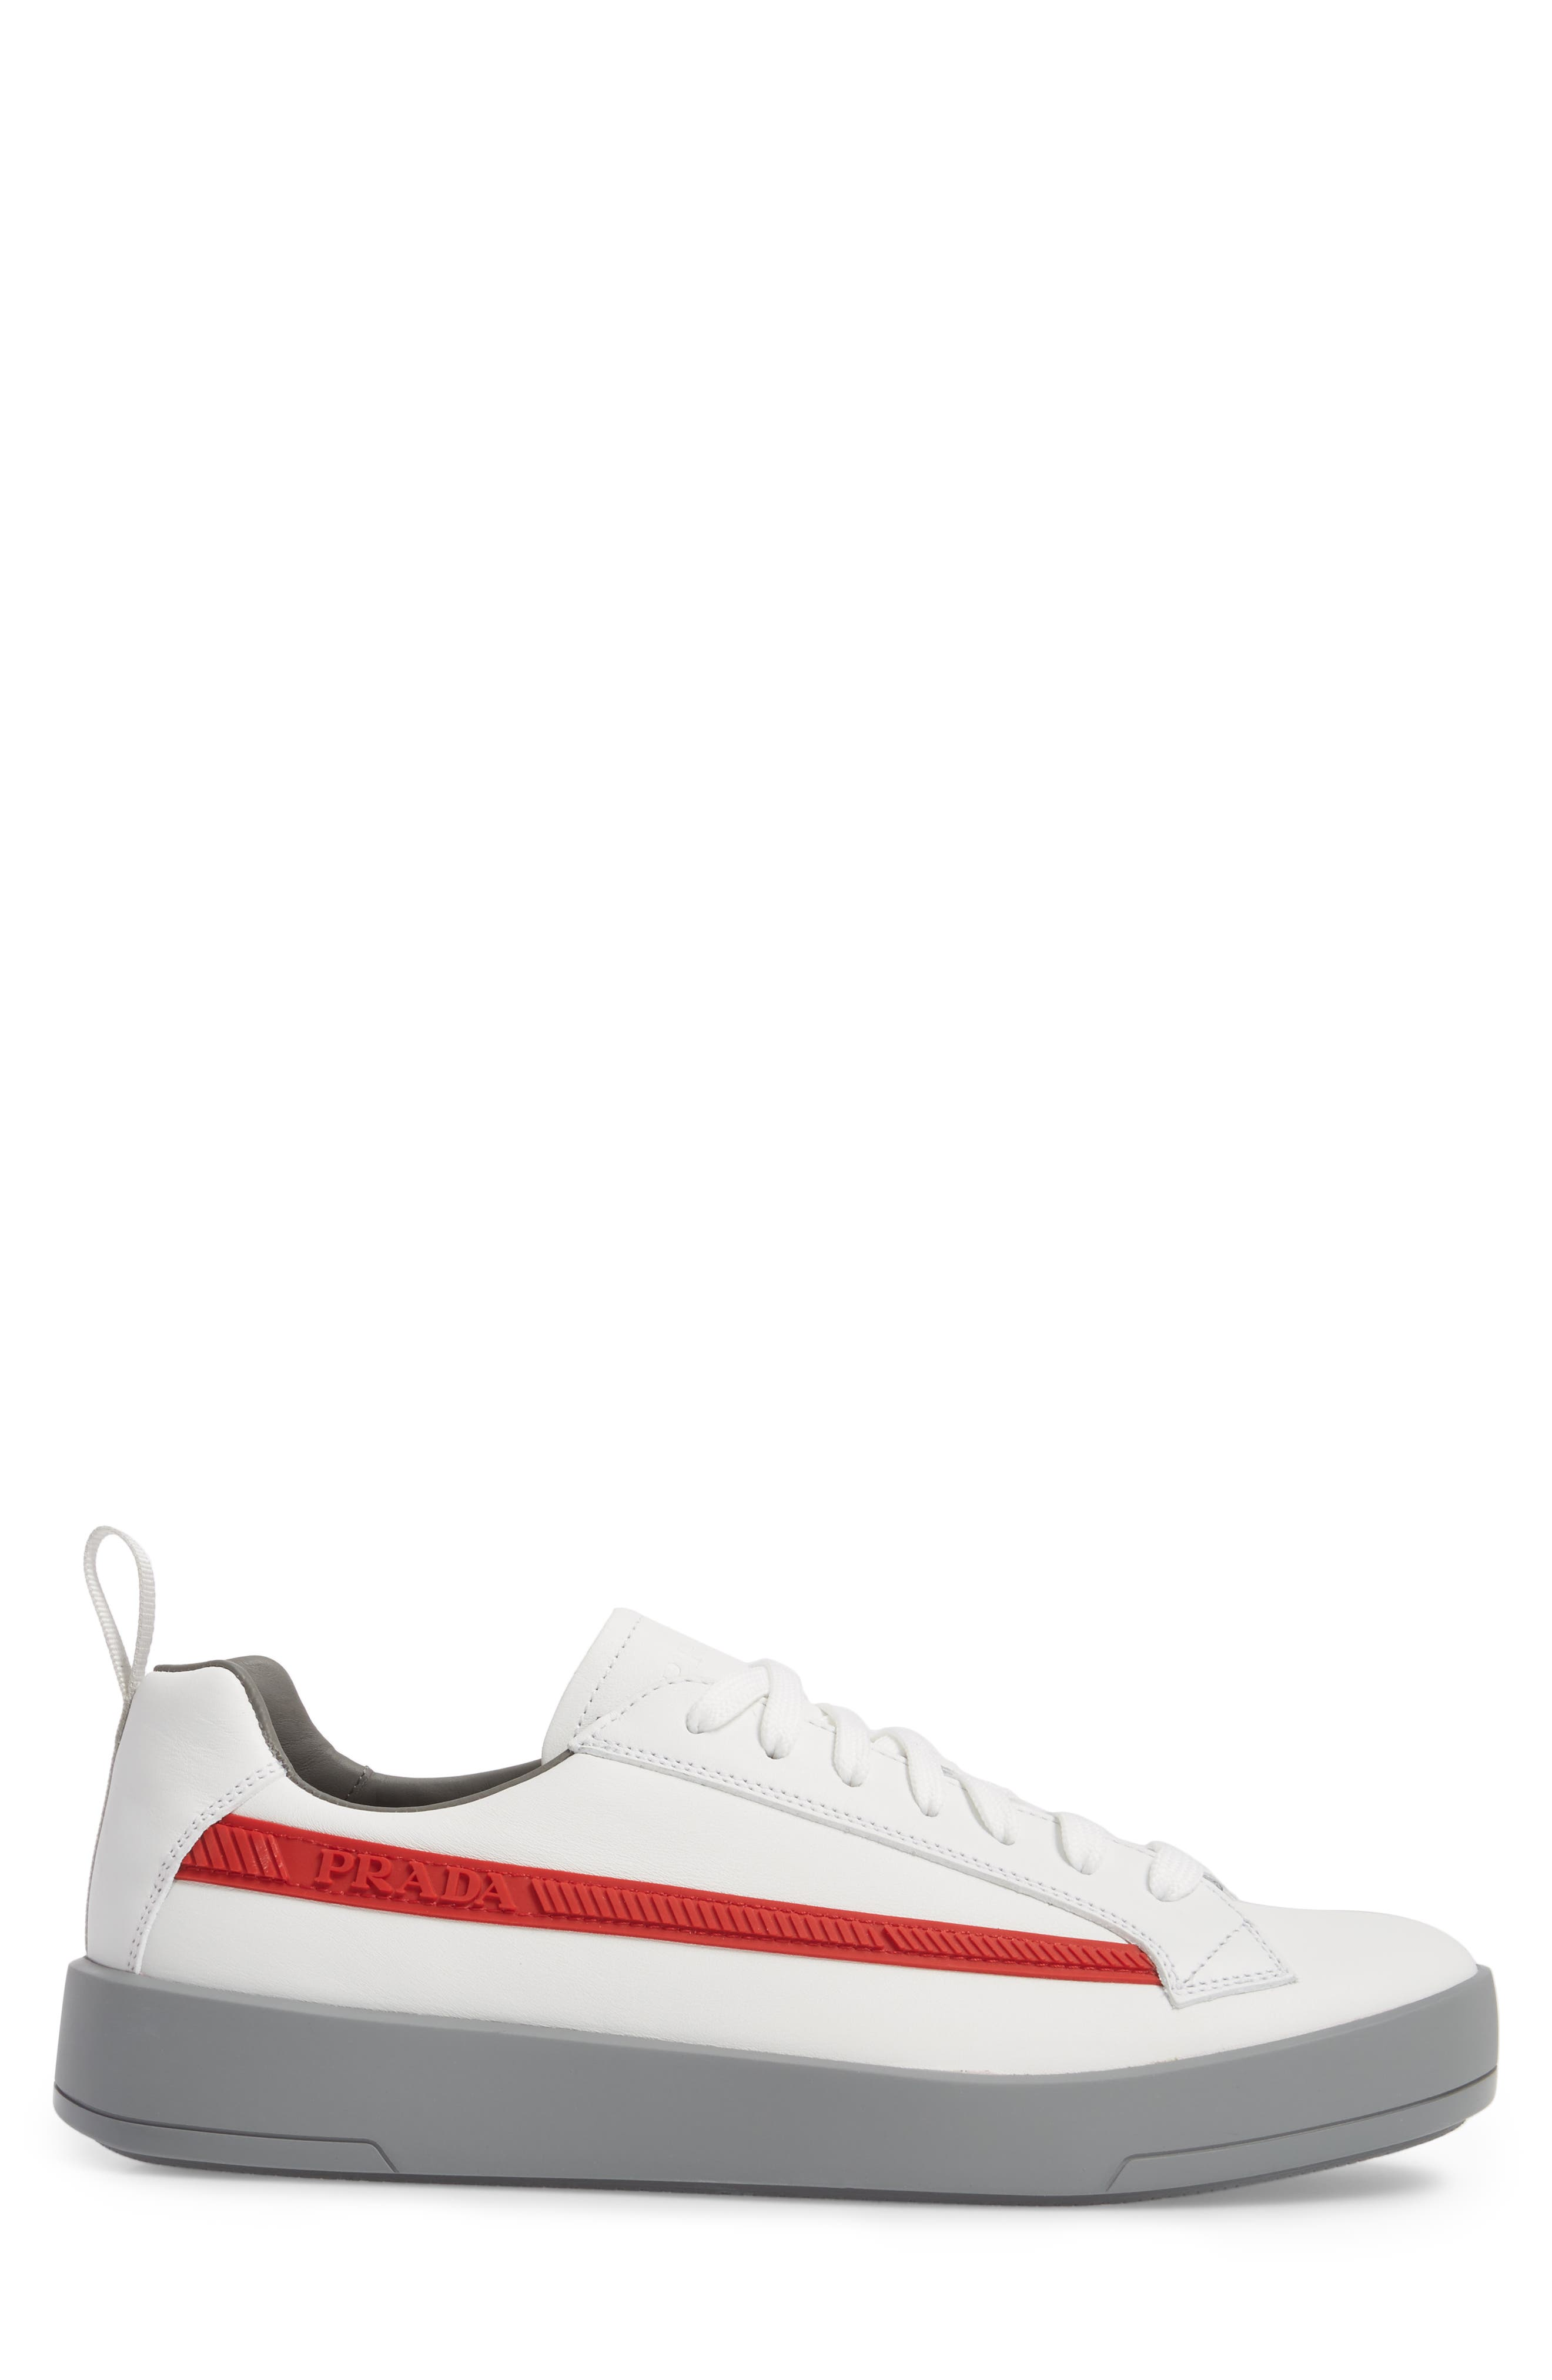 Linea Rossa Sneaker,                             Alternate thumbnail 3, color,                             Bianco